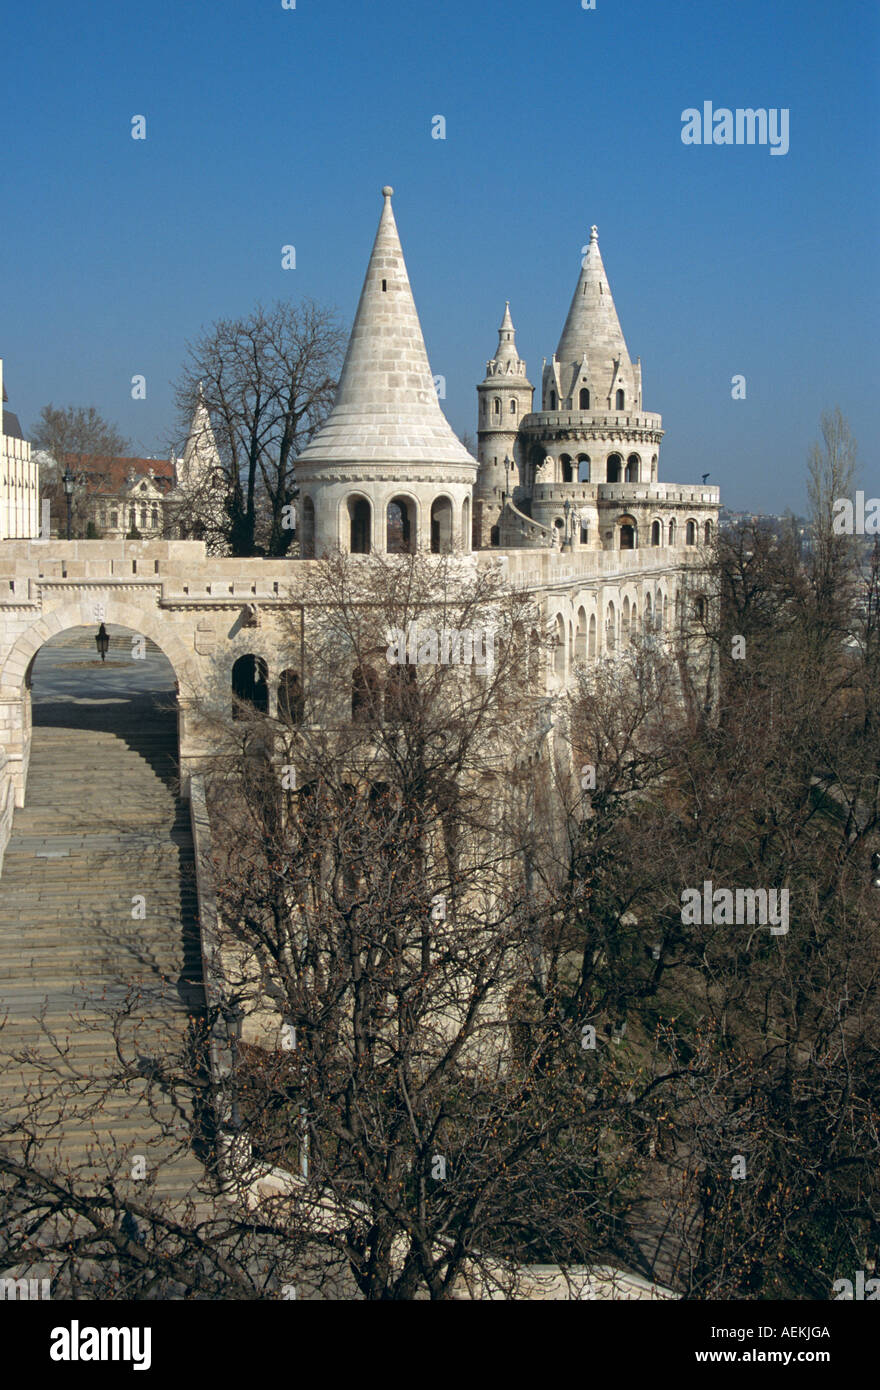 Fishermen's Bastion, Trinity Square, Castle Hill District, Budapest, Hungary Stock Photo